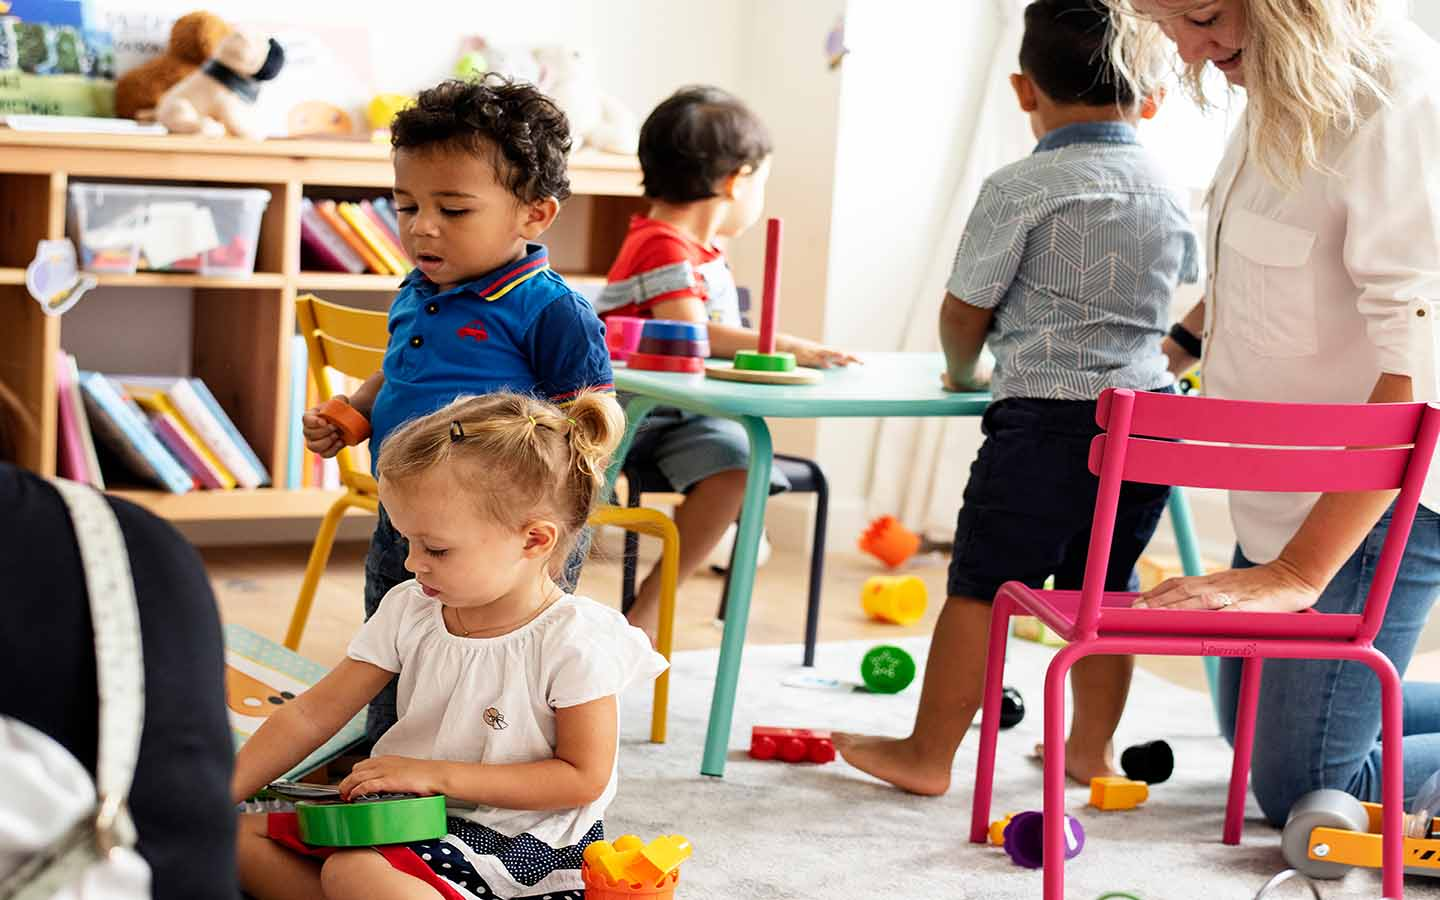 kids playing in a nursery